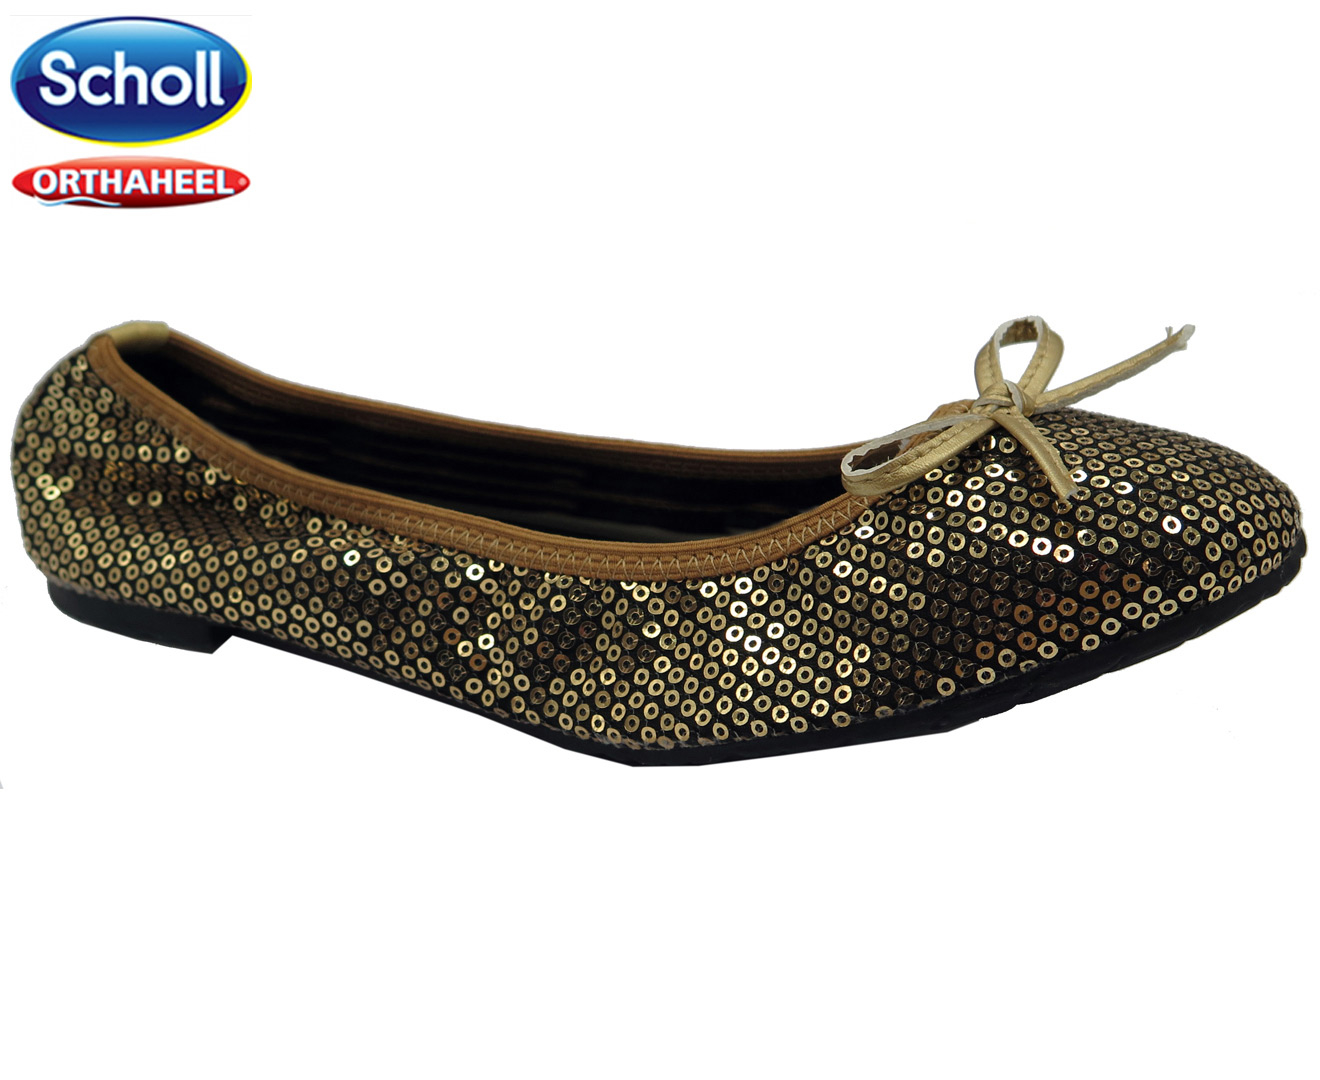 Scholl Gold Pocket Ballerina Women's Flat Sequin 7fgybY6v